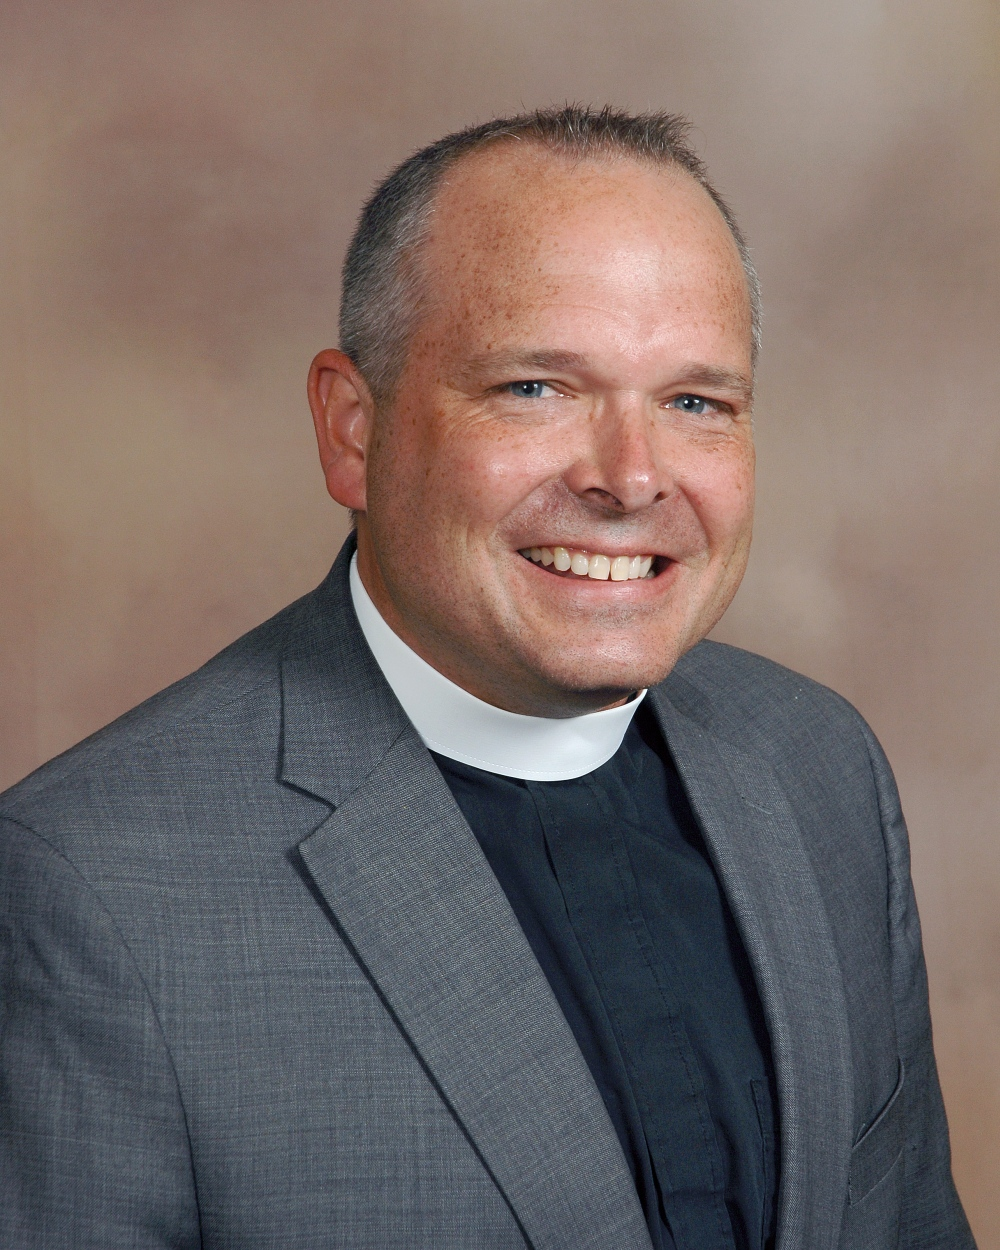 Dean, West Central Conference The Rev. Greg Busboom St. John's, Springfield